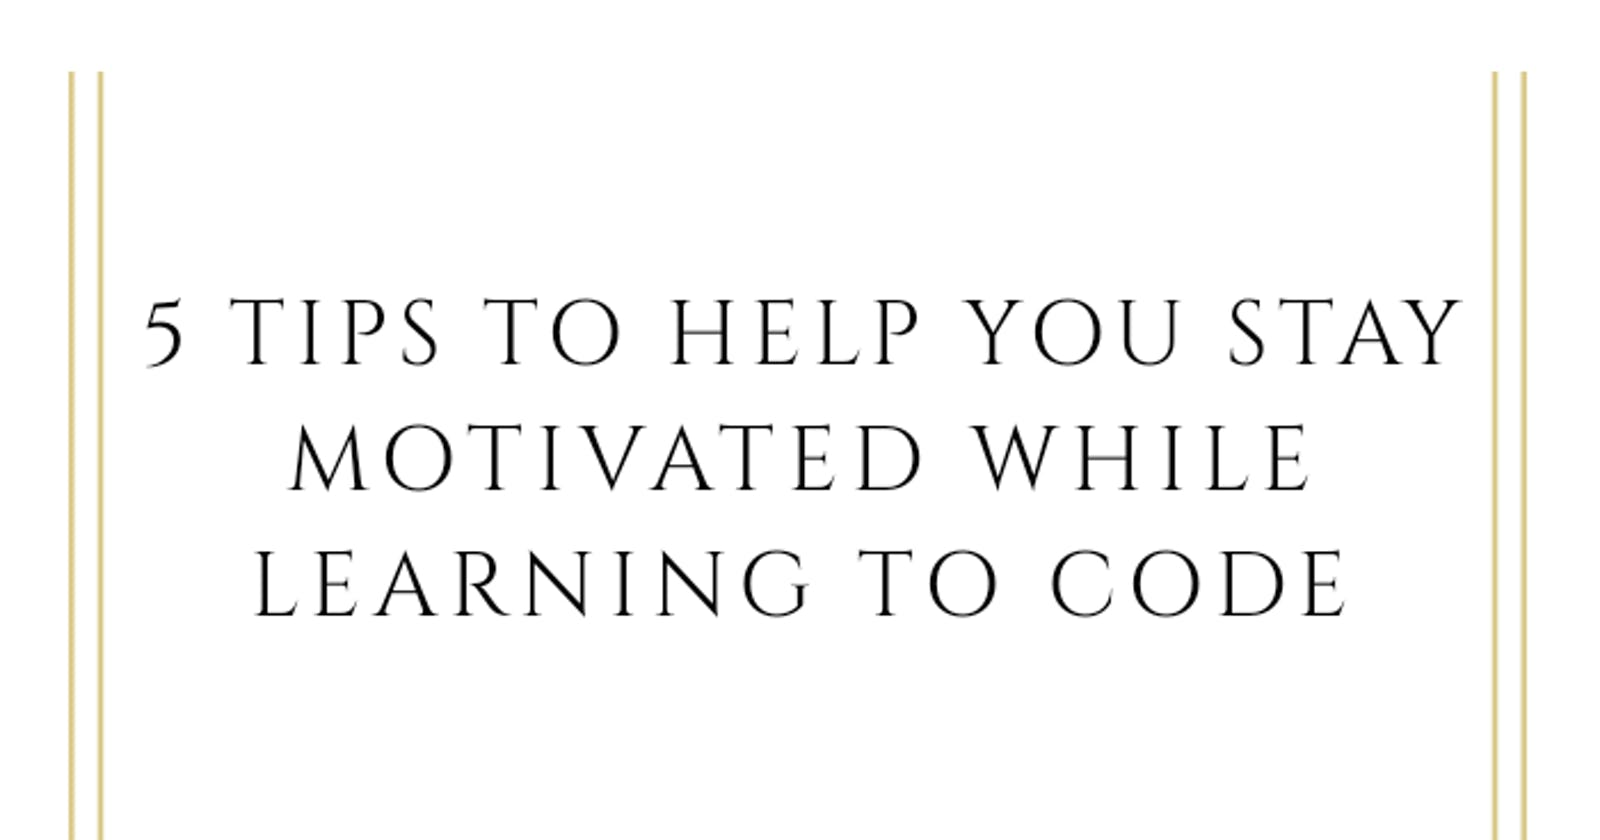 5 Tips To Help You Stay Motivated While Learning To Code